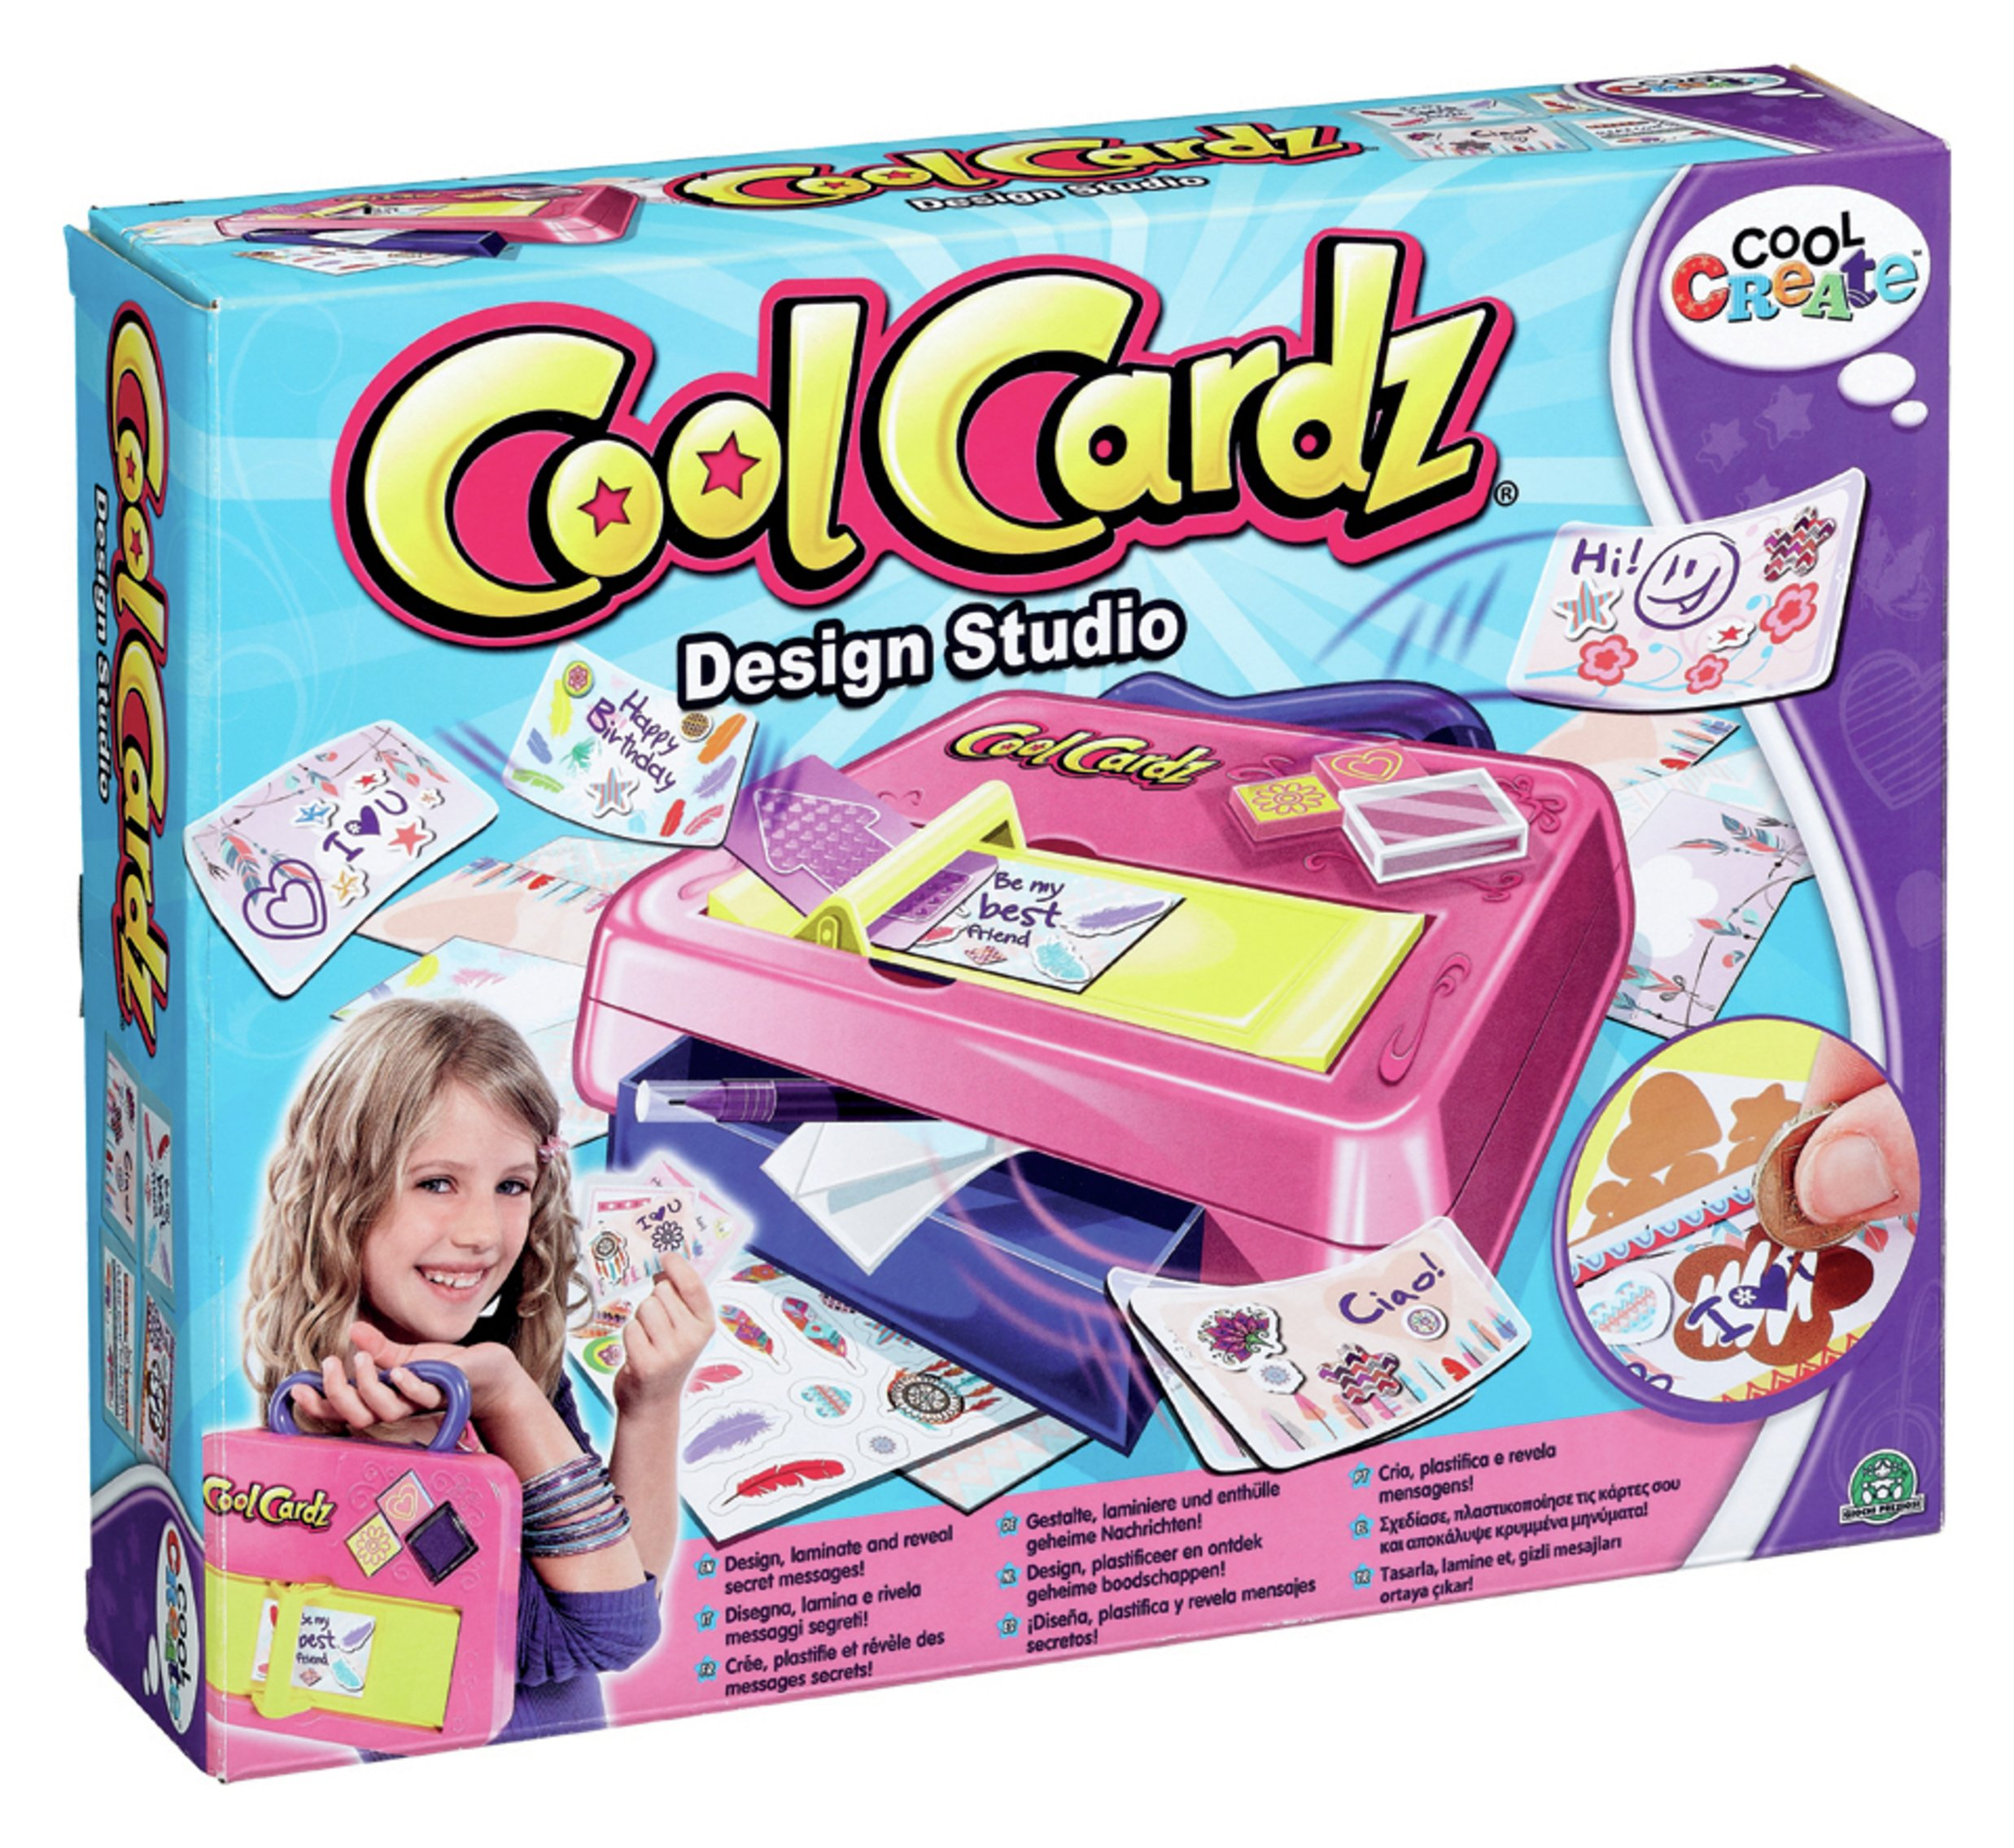 Image of Cool Cardz Design Studio.